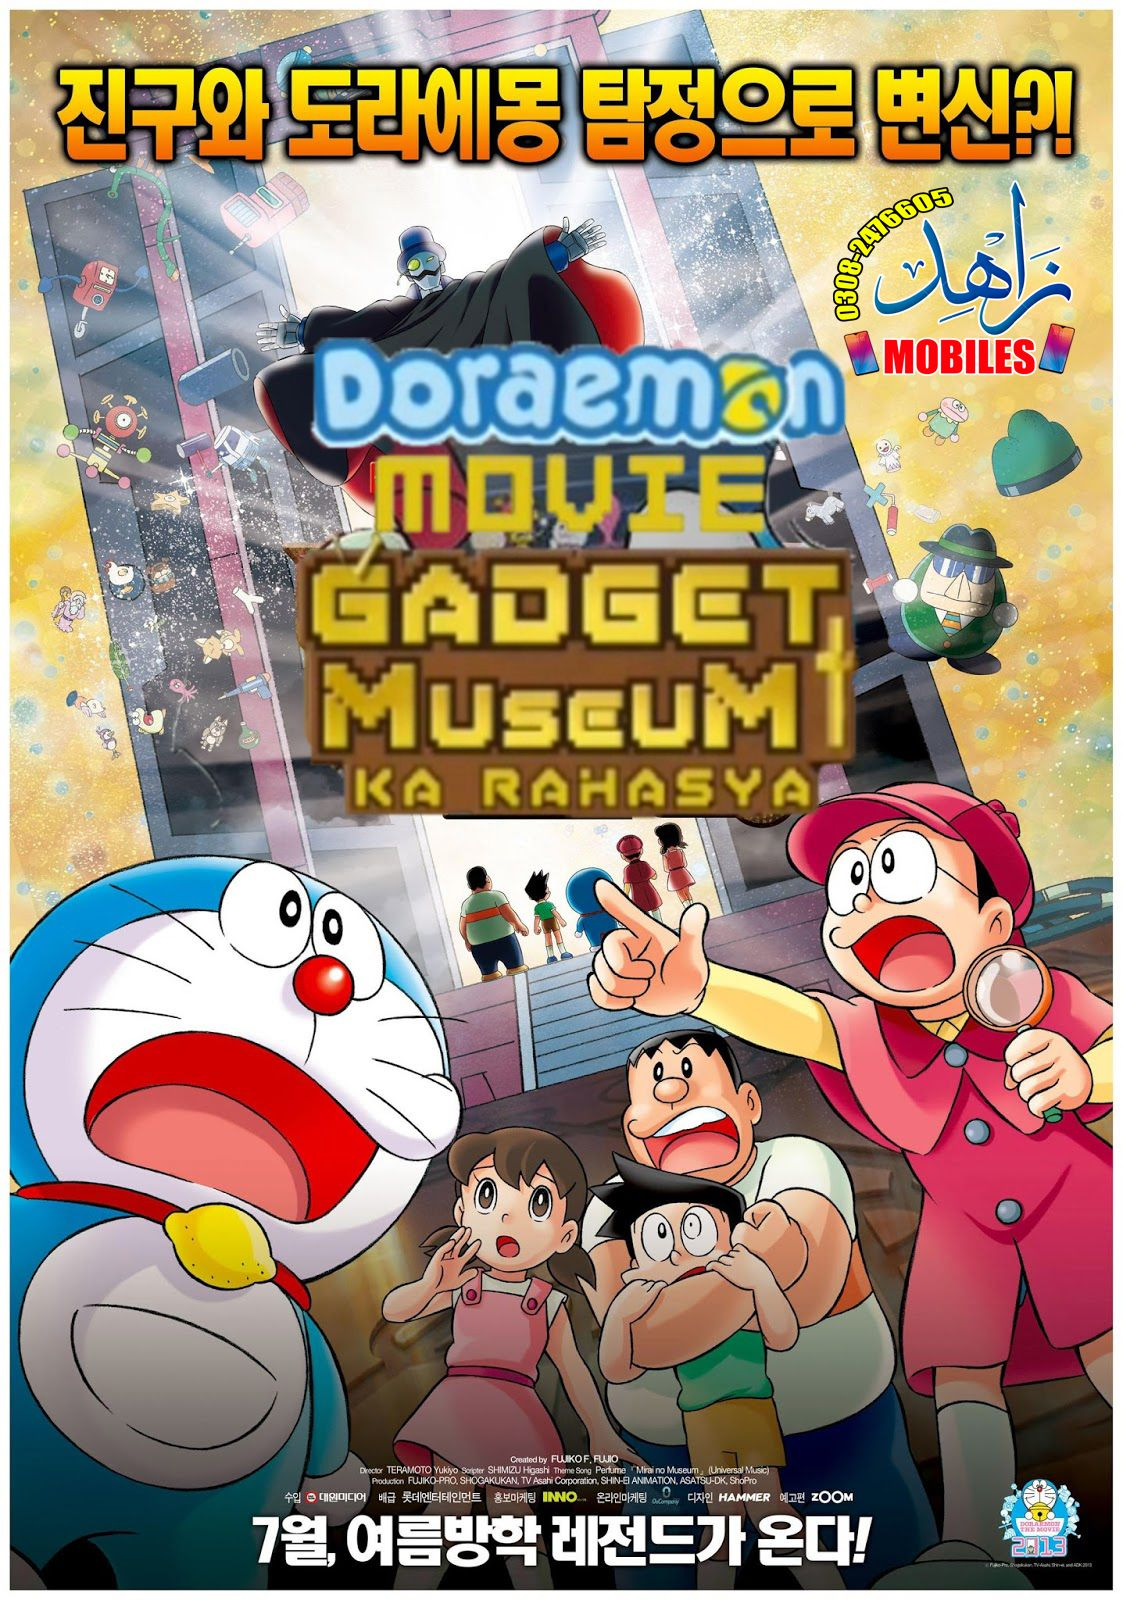 Doraemon The Movie Gadget Museum Ka Rahasya {2013} Hindi Dubbed | 480p | 720p